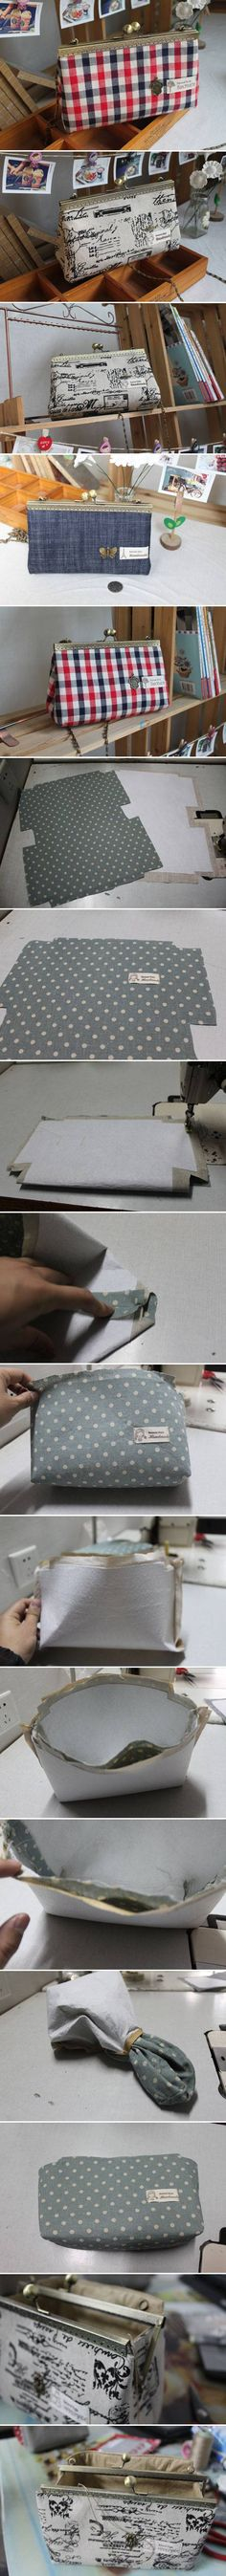 DIY Simple Handbag